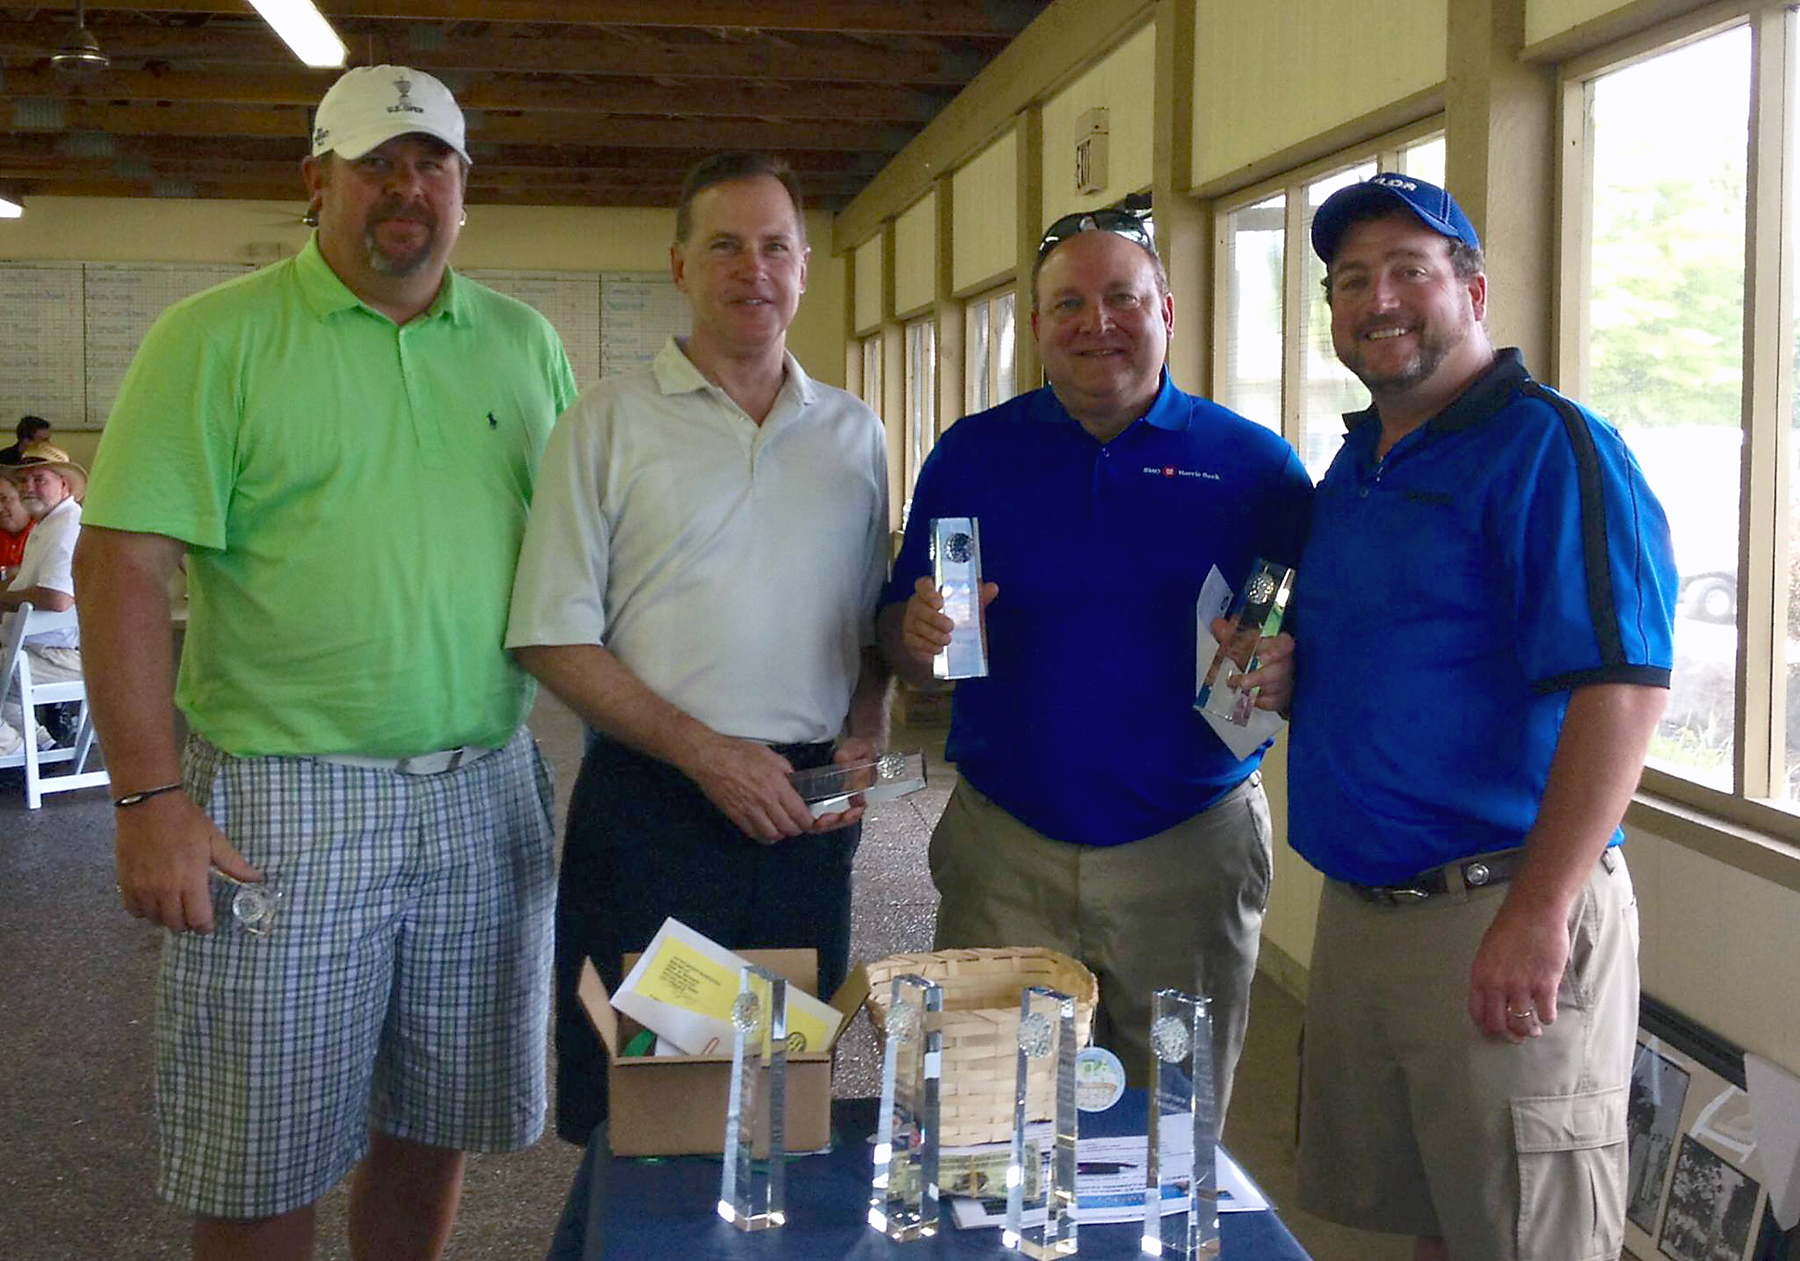 From left: Mark Bilger, John Kirkwood, Greg O'Connor and Chuck Goodrich, Riverview Hospital Foundation Board Chair. Mark Midkiff also was on the second place BMO Harris team, but not in the picture. (Submitted photo)